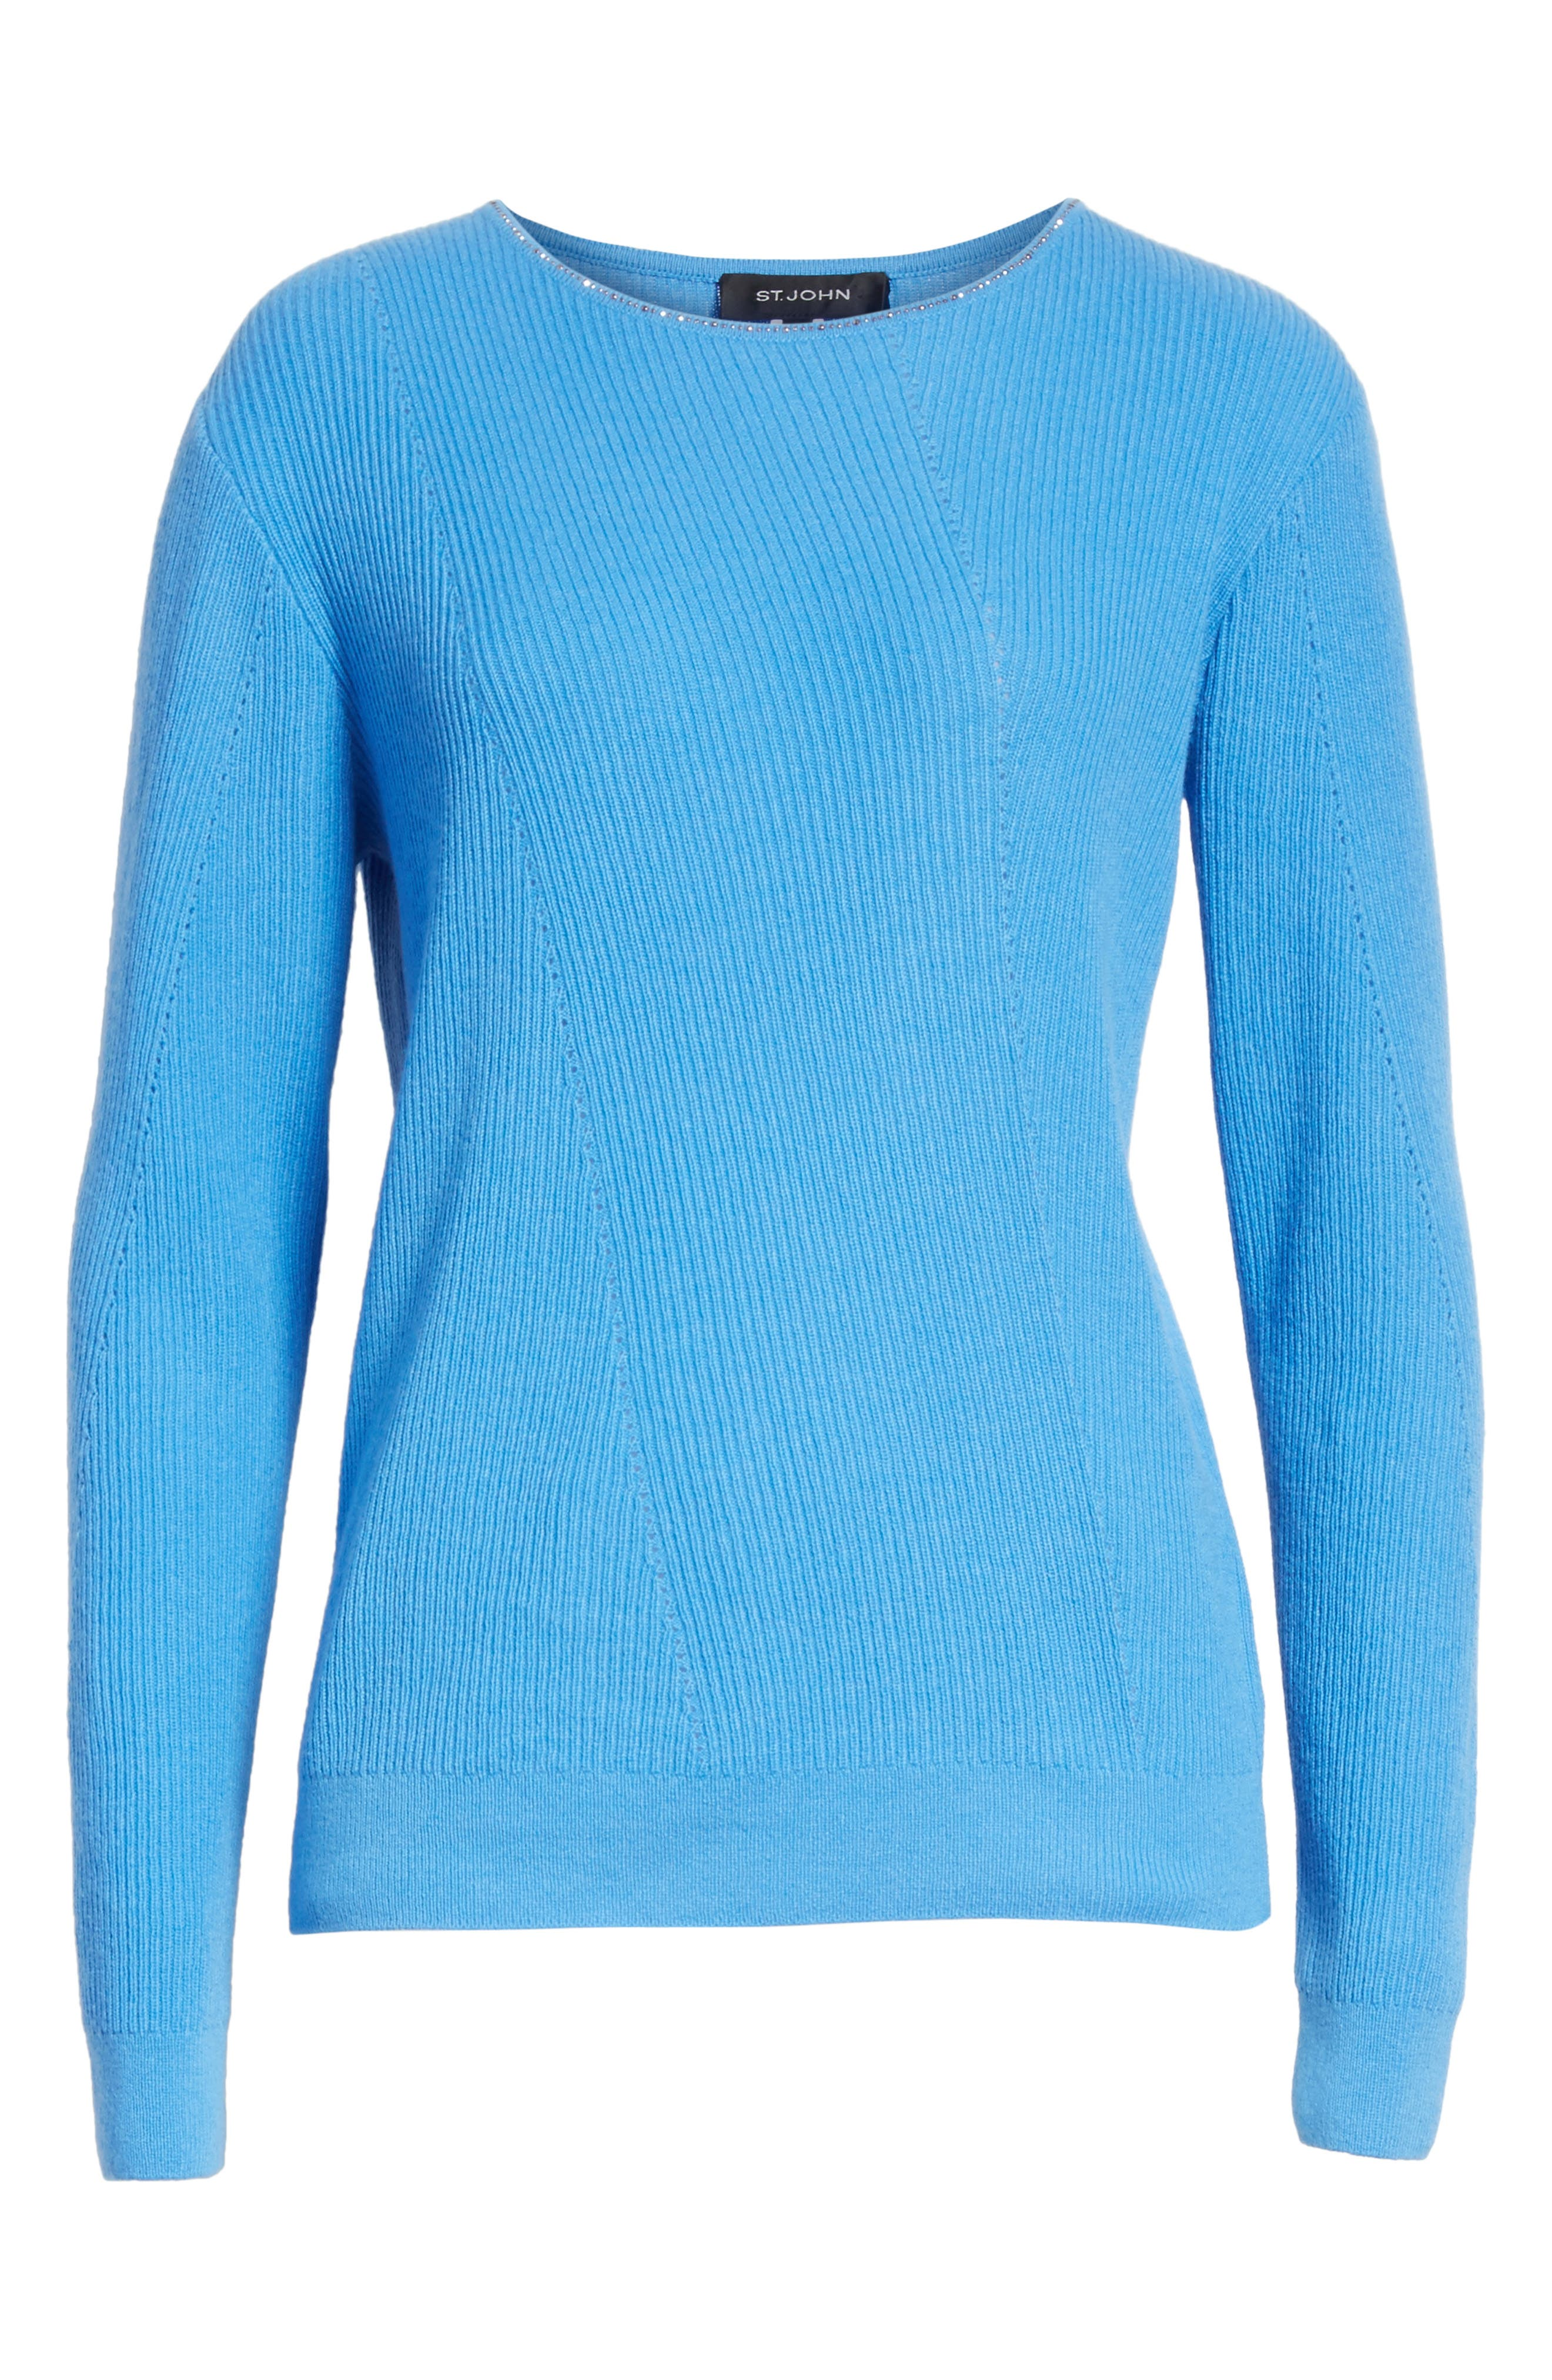 Cashmere Sweater,                             Alternate thumbnail 10, color,                             Bright Niagara